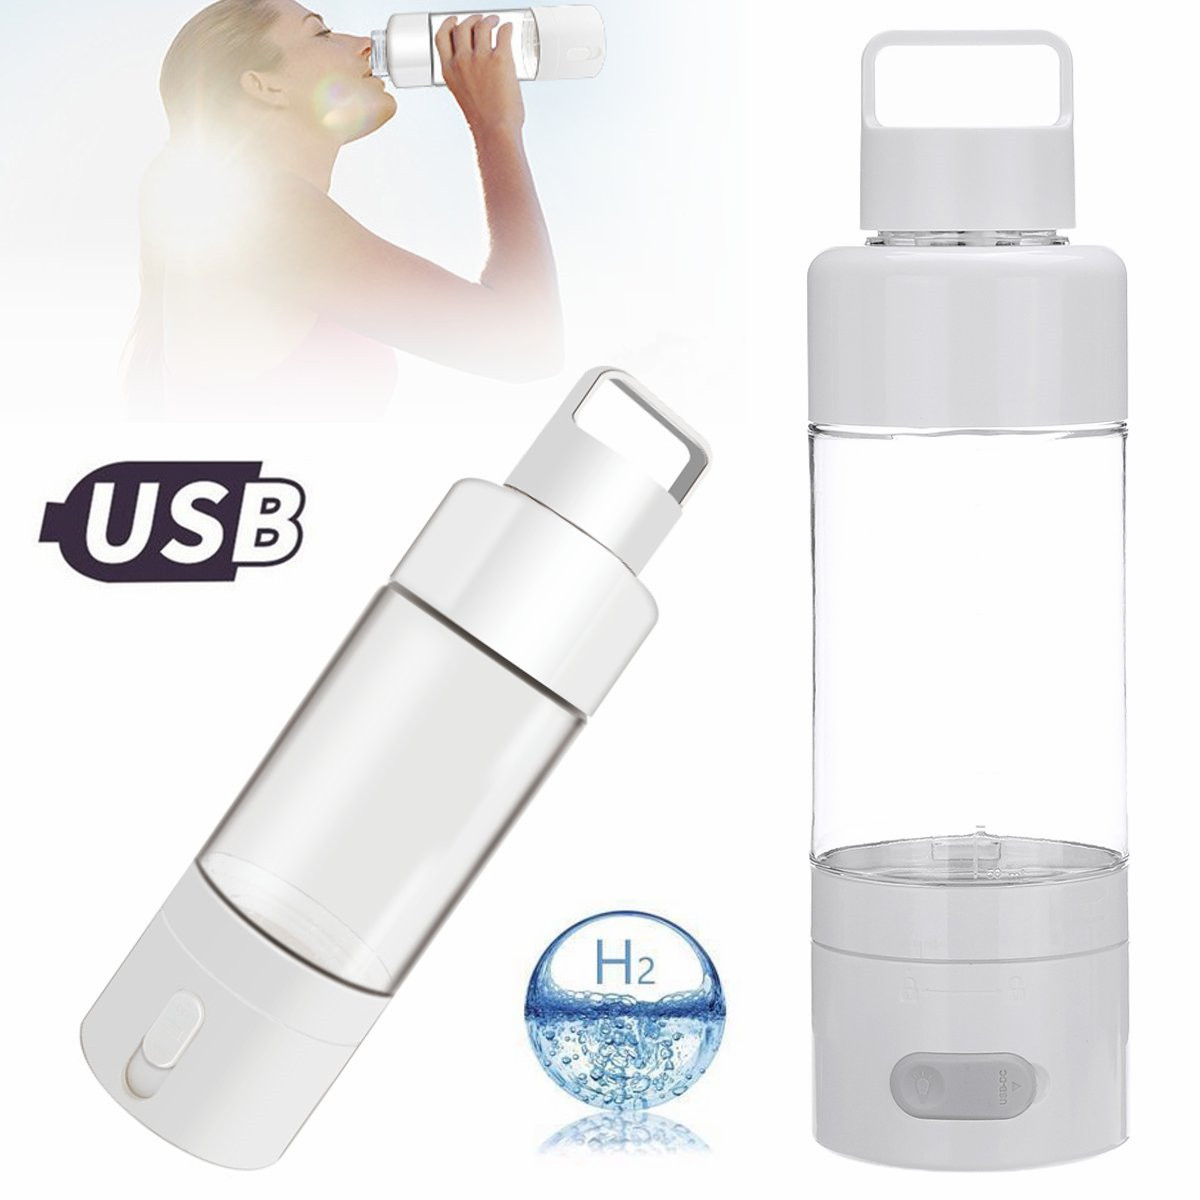 Titanium Quality Hydrogen Rich Water Cup Ionizer Maker/Generator Super Antioxidants ORP Hydrogen Bottle USB Charging 500ml